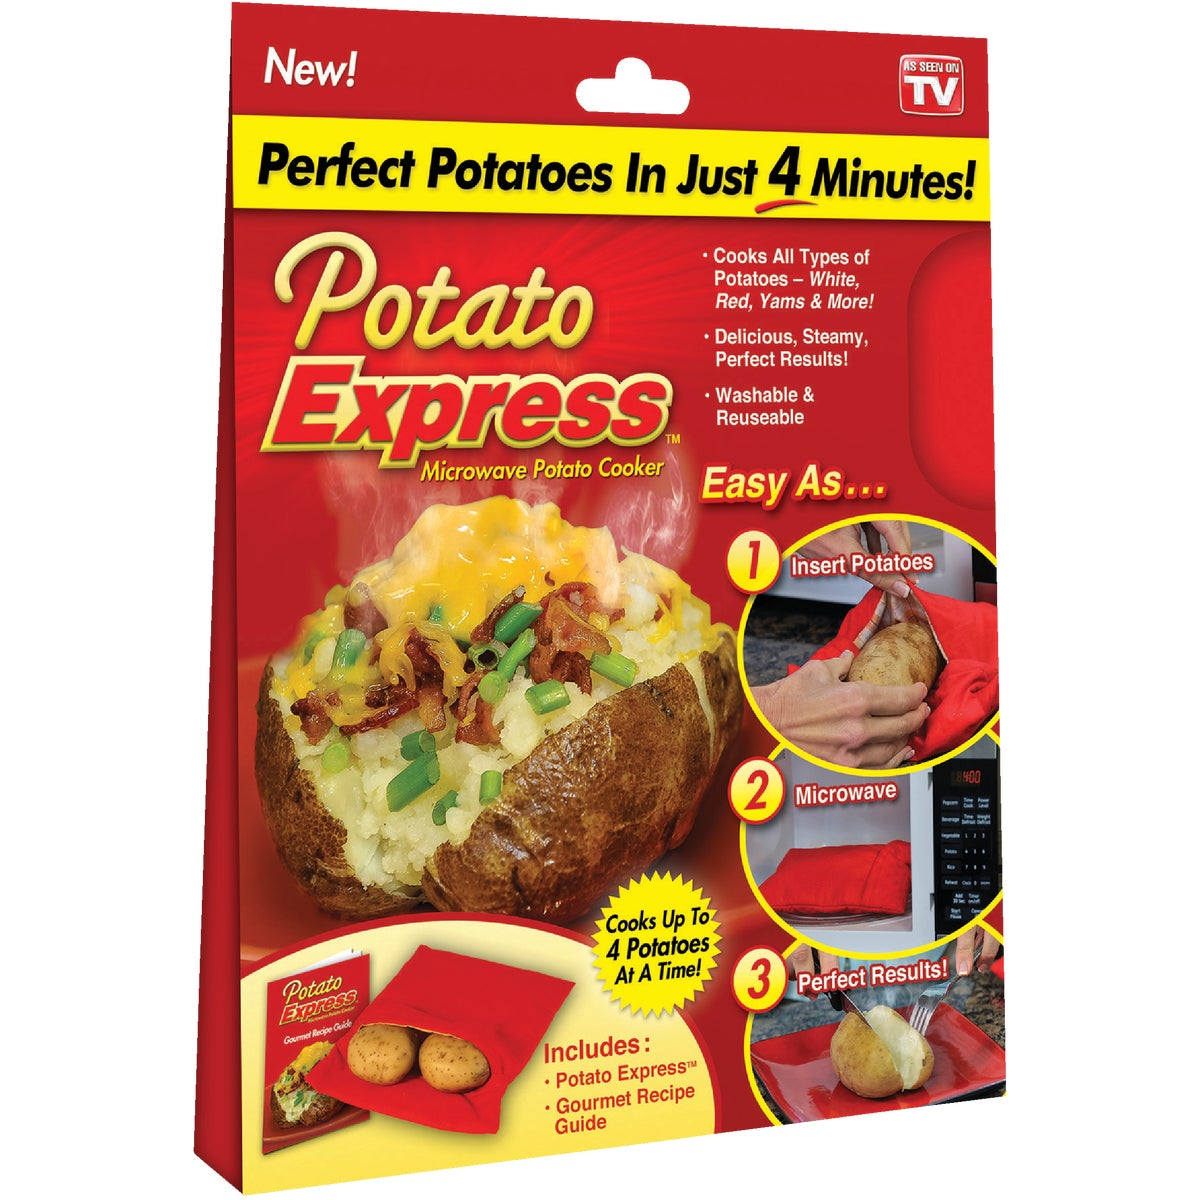 POTATO EXPRESS STEAMER - 1000159 by Ontel Products